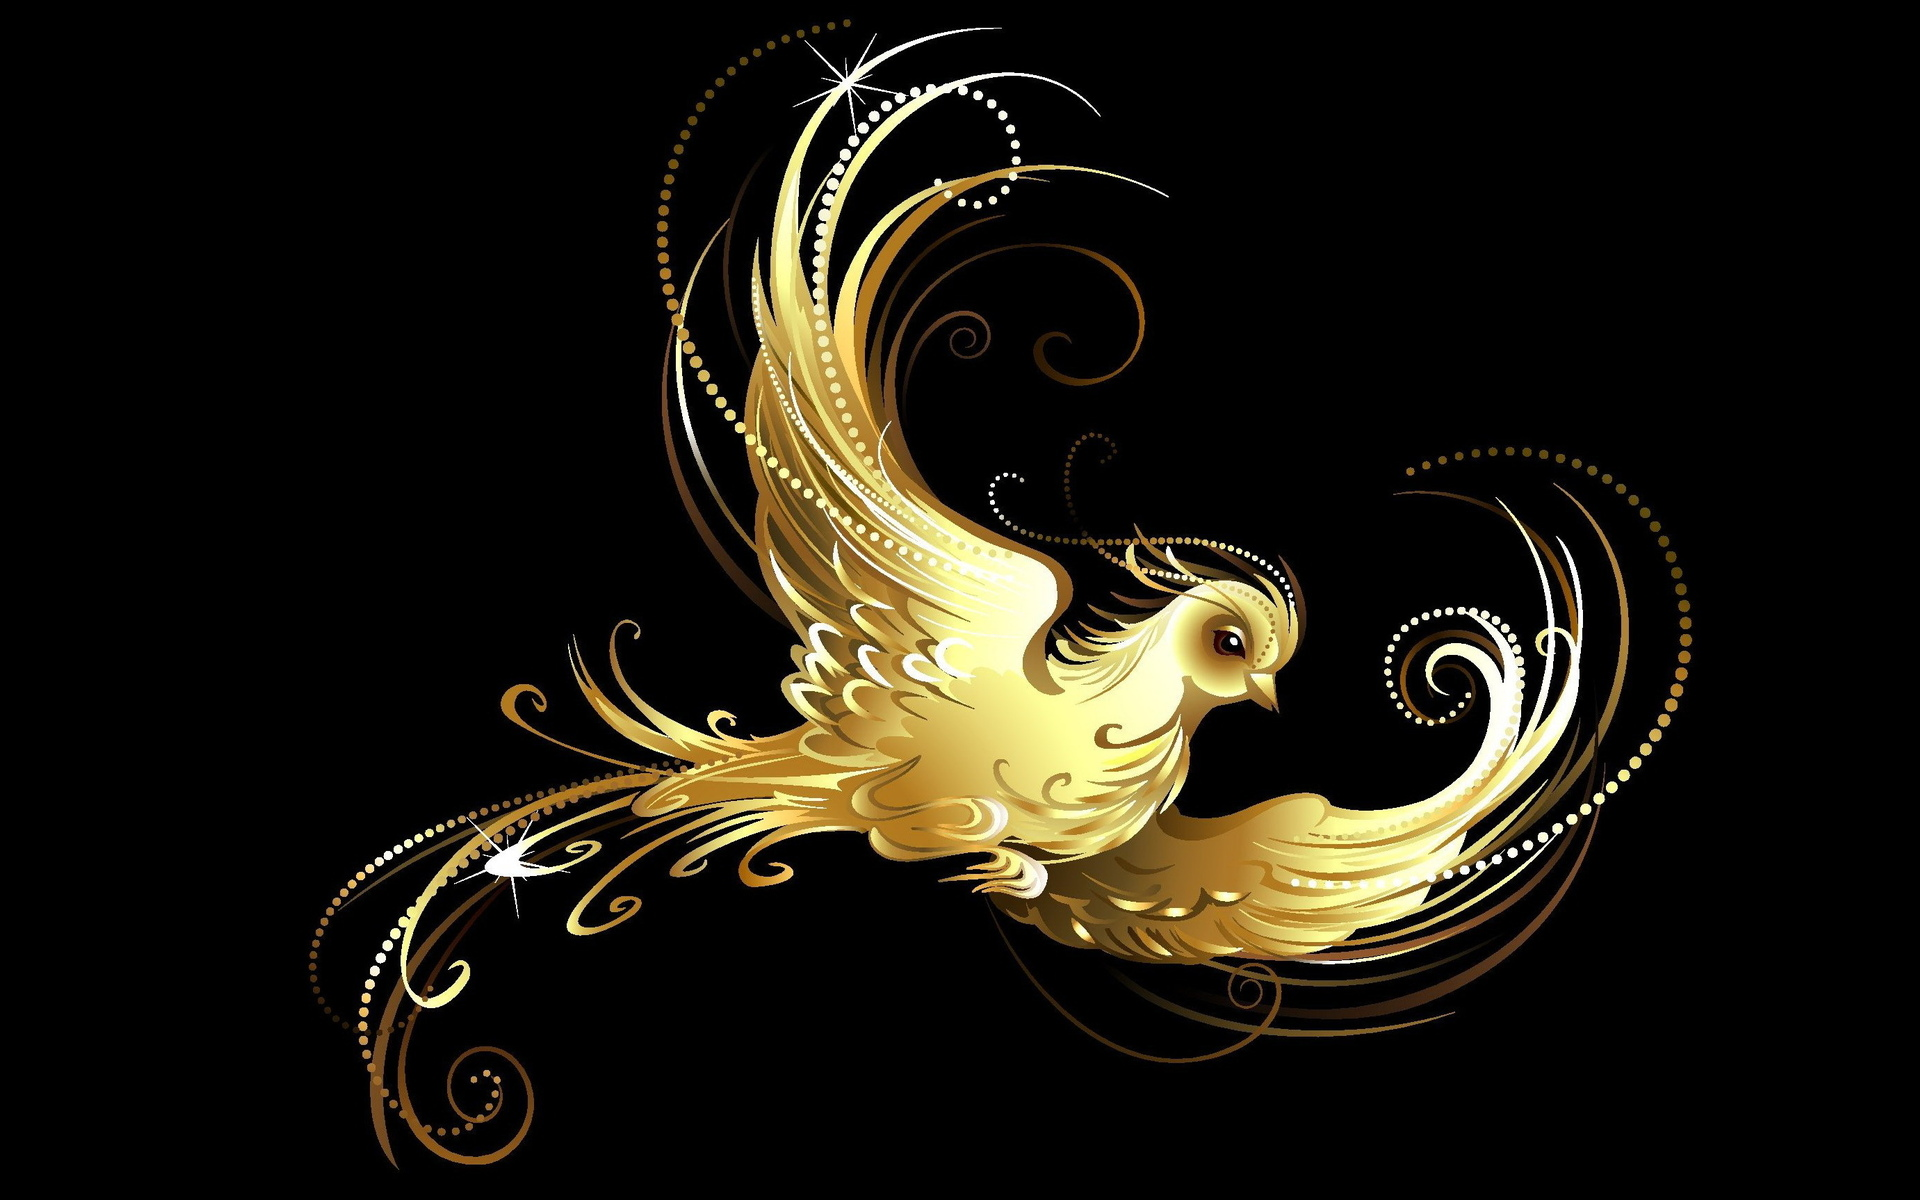 Abstract golden bird wallpapers abstract golden bird for Gold bird wallpaper